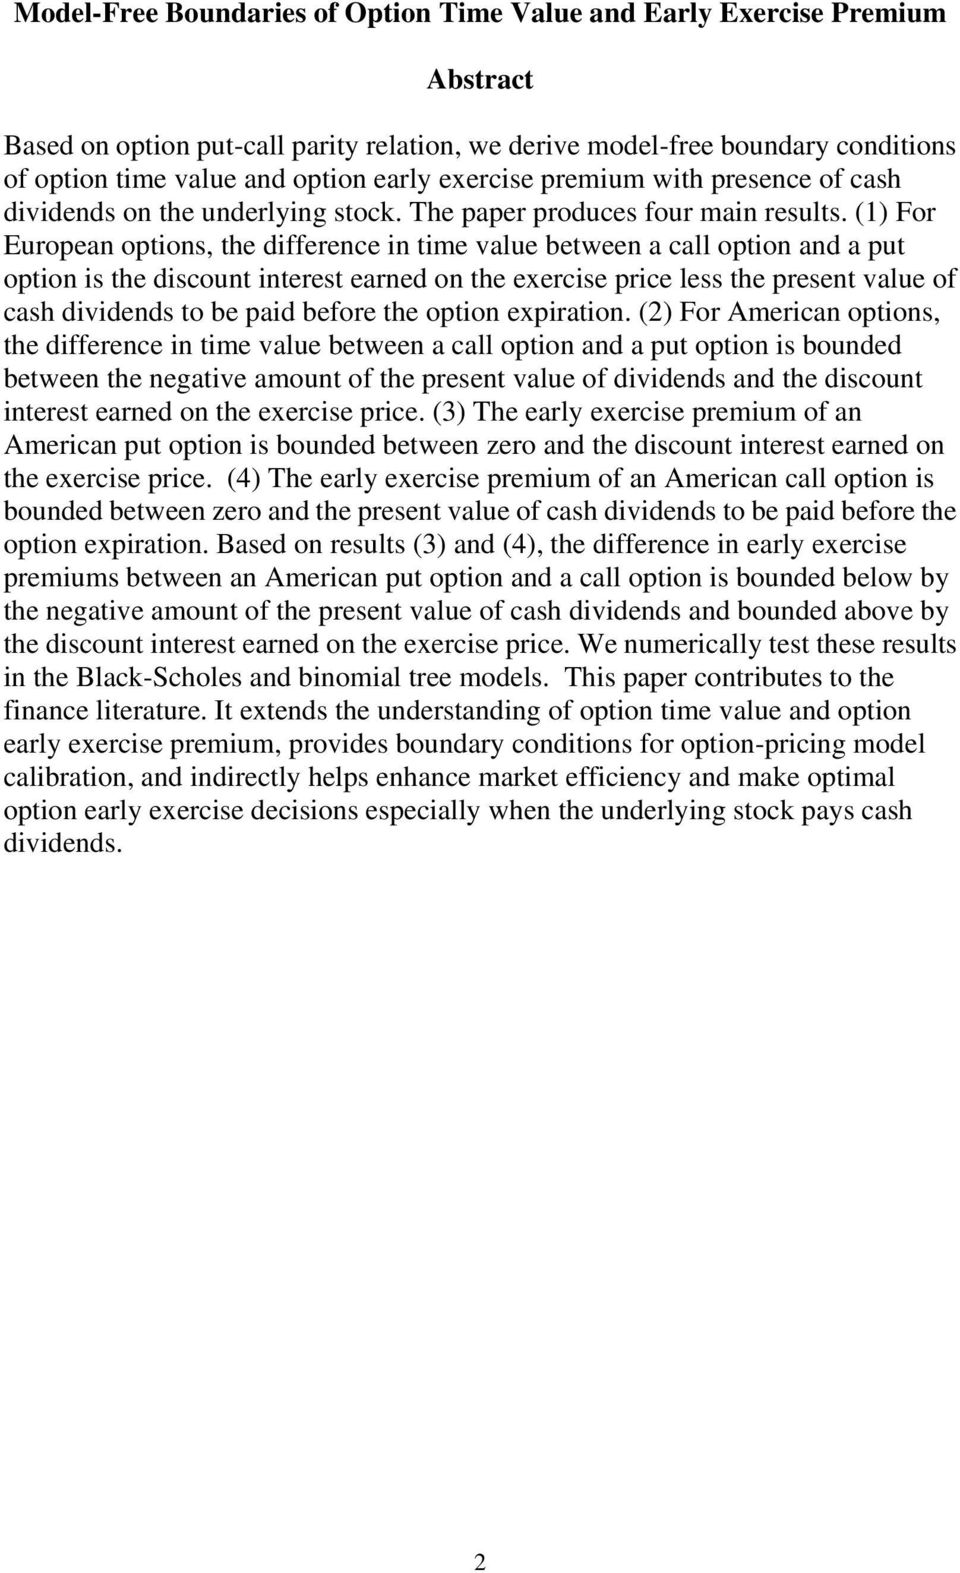 (1) For European options, the difference in time value between a call option and a put option is the discount interest earned on the exercise price less the present value of cash dividends to be paid